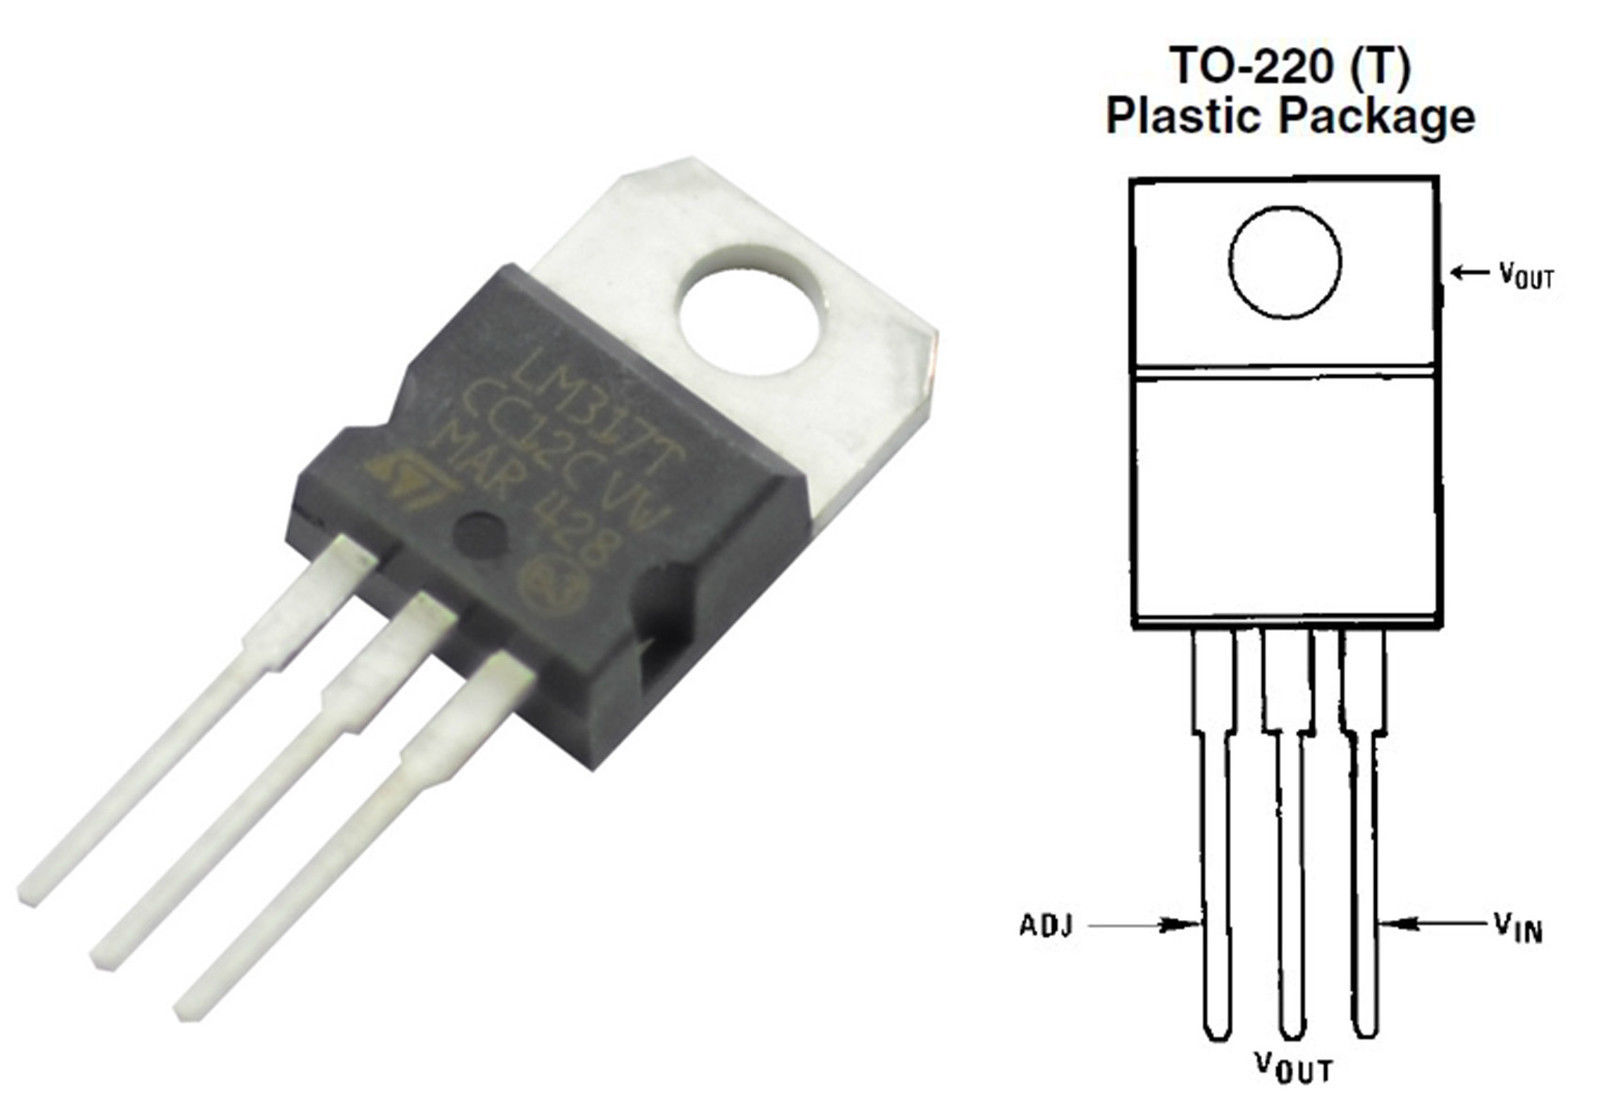 5 X Lm317 Positive Voltage Regulator To 220 All Top Notch Switching Circuit Using Schematic